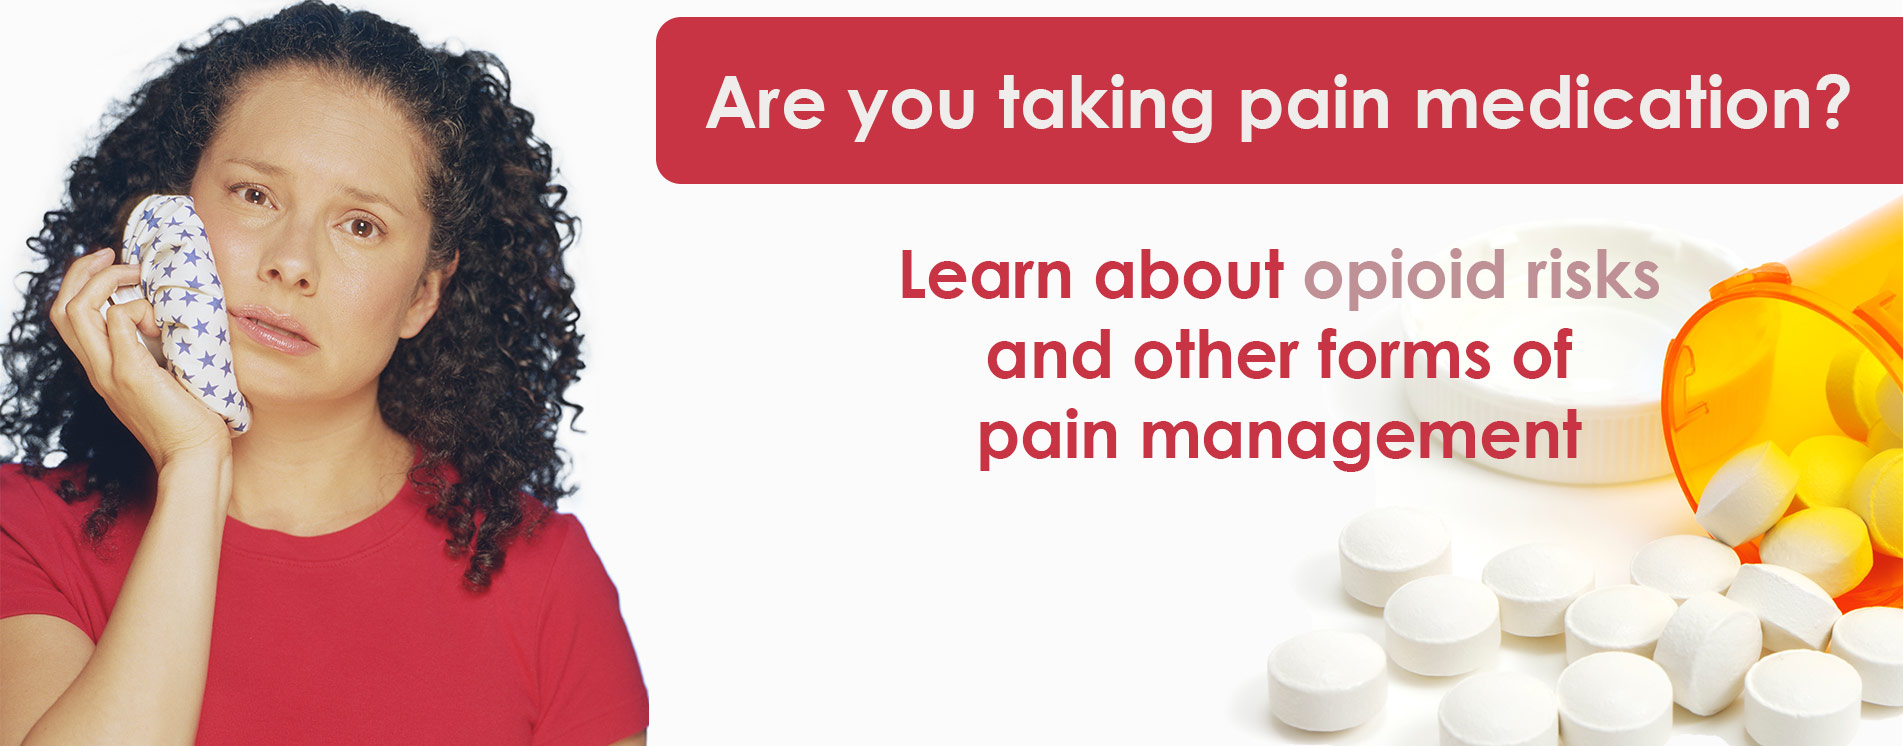 Opioids and pain medication information